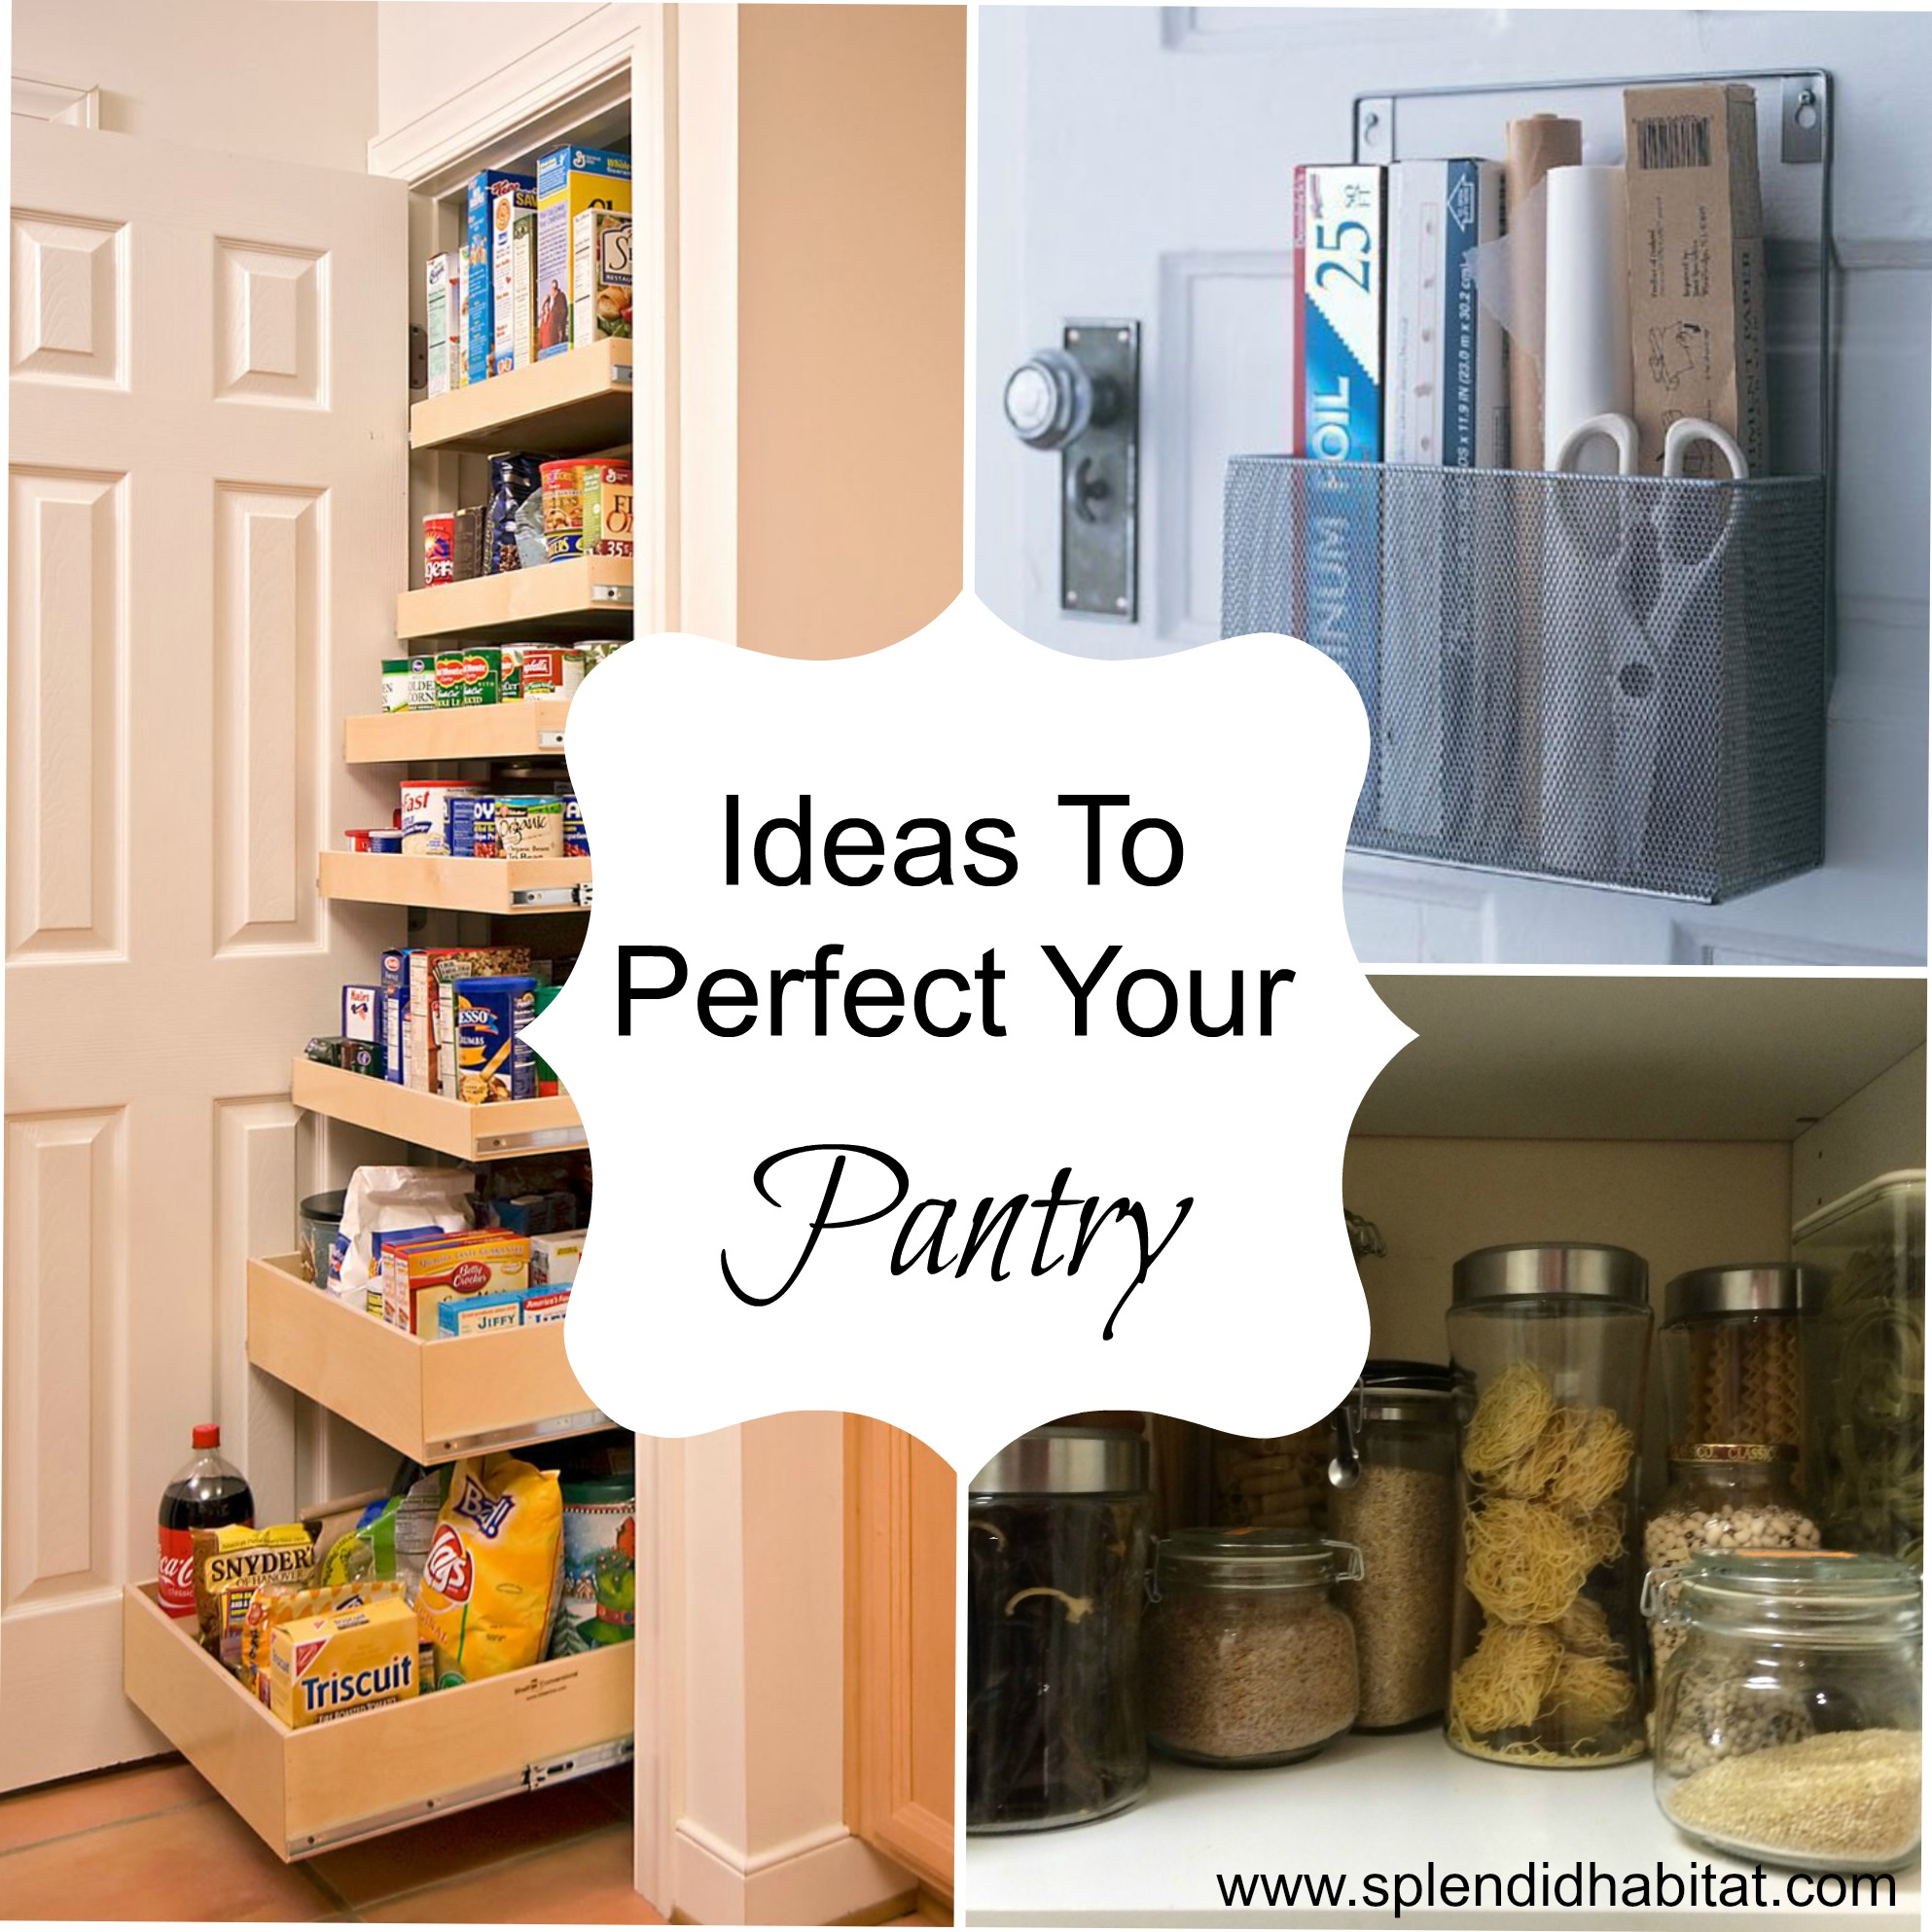 Simple ideas to perfect your pantry for Perfect kitchen organization